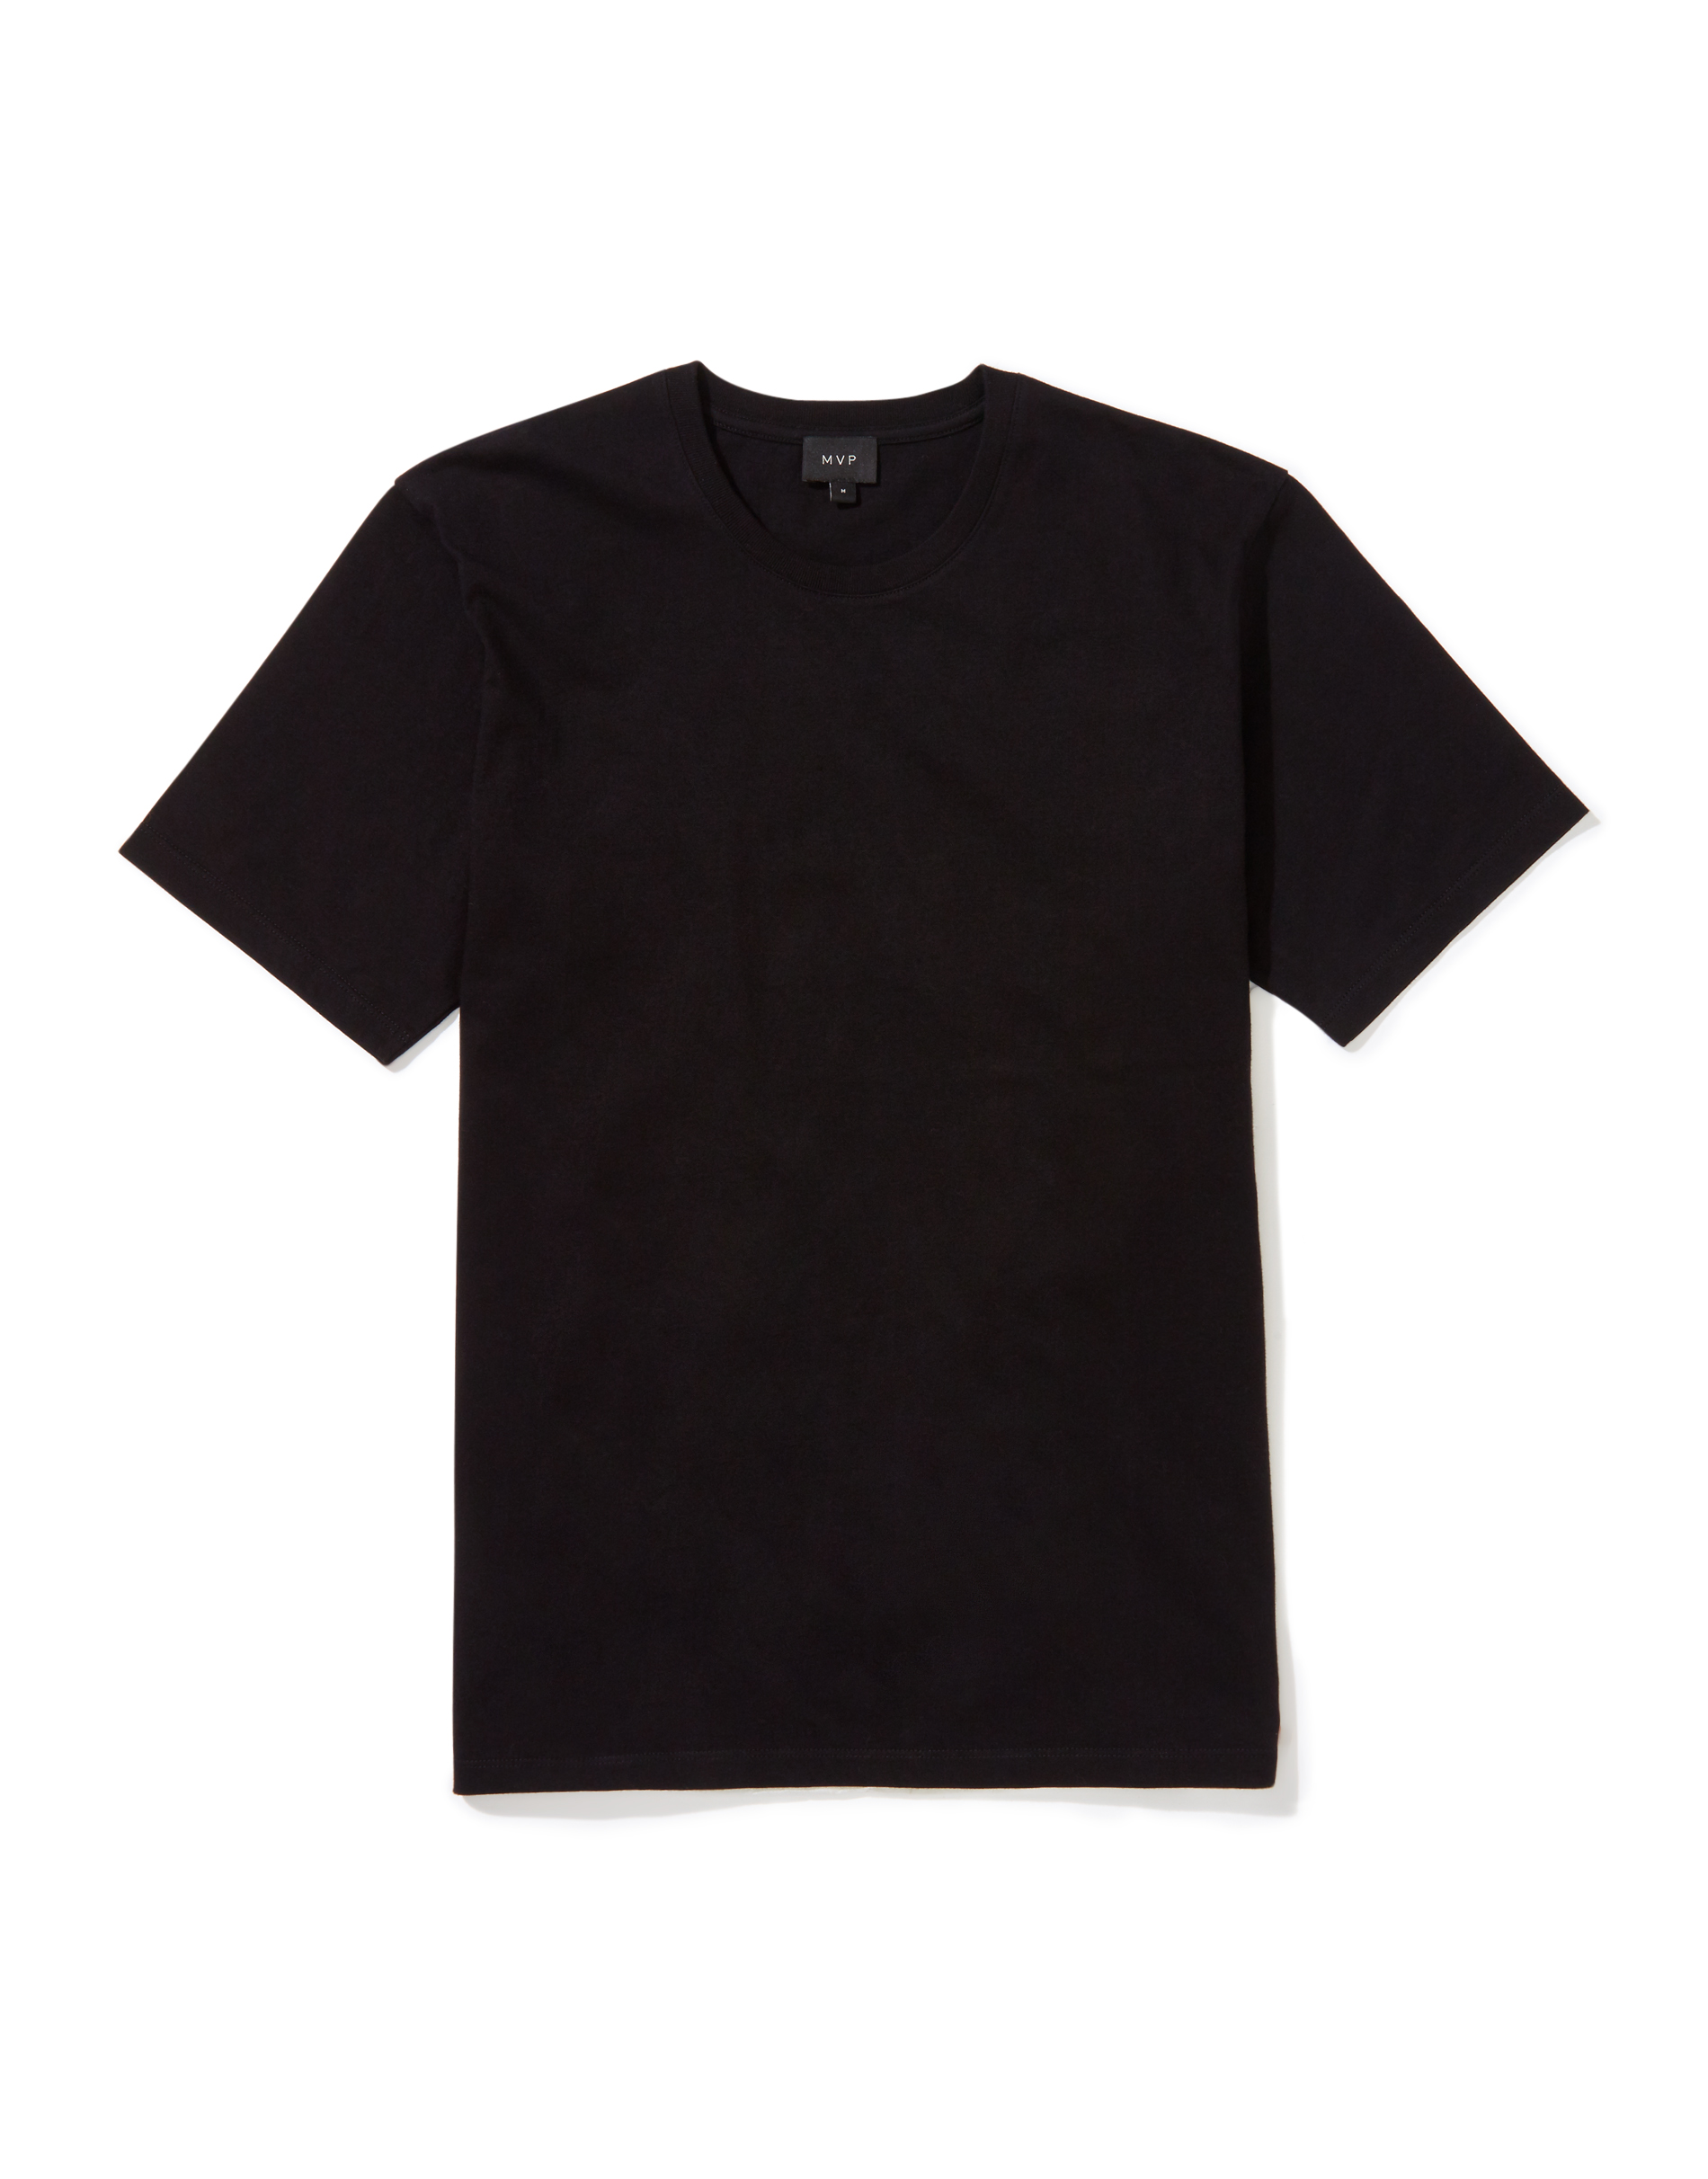 MVP Black Ashfield Crew Neck T-shirt